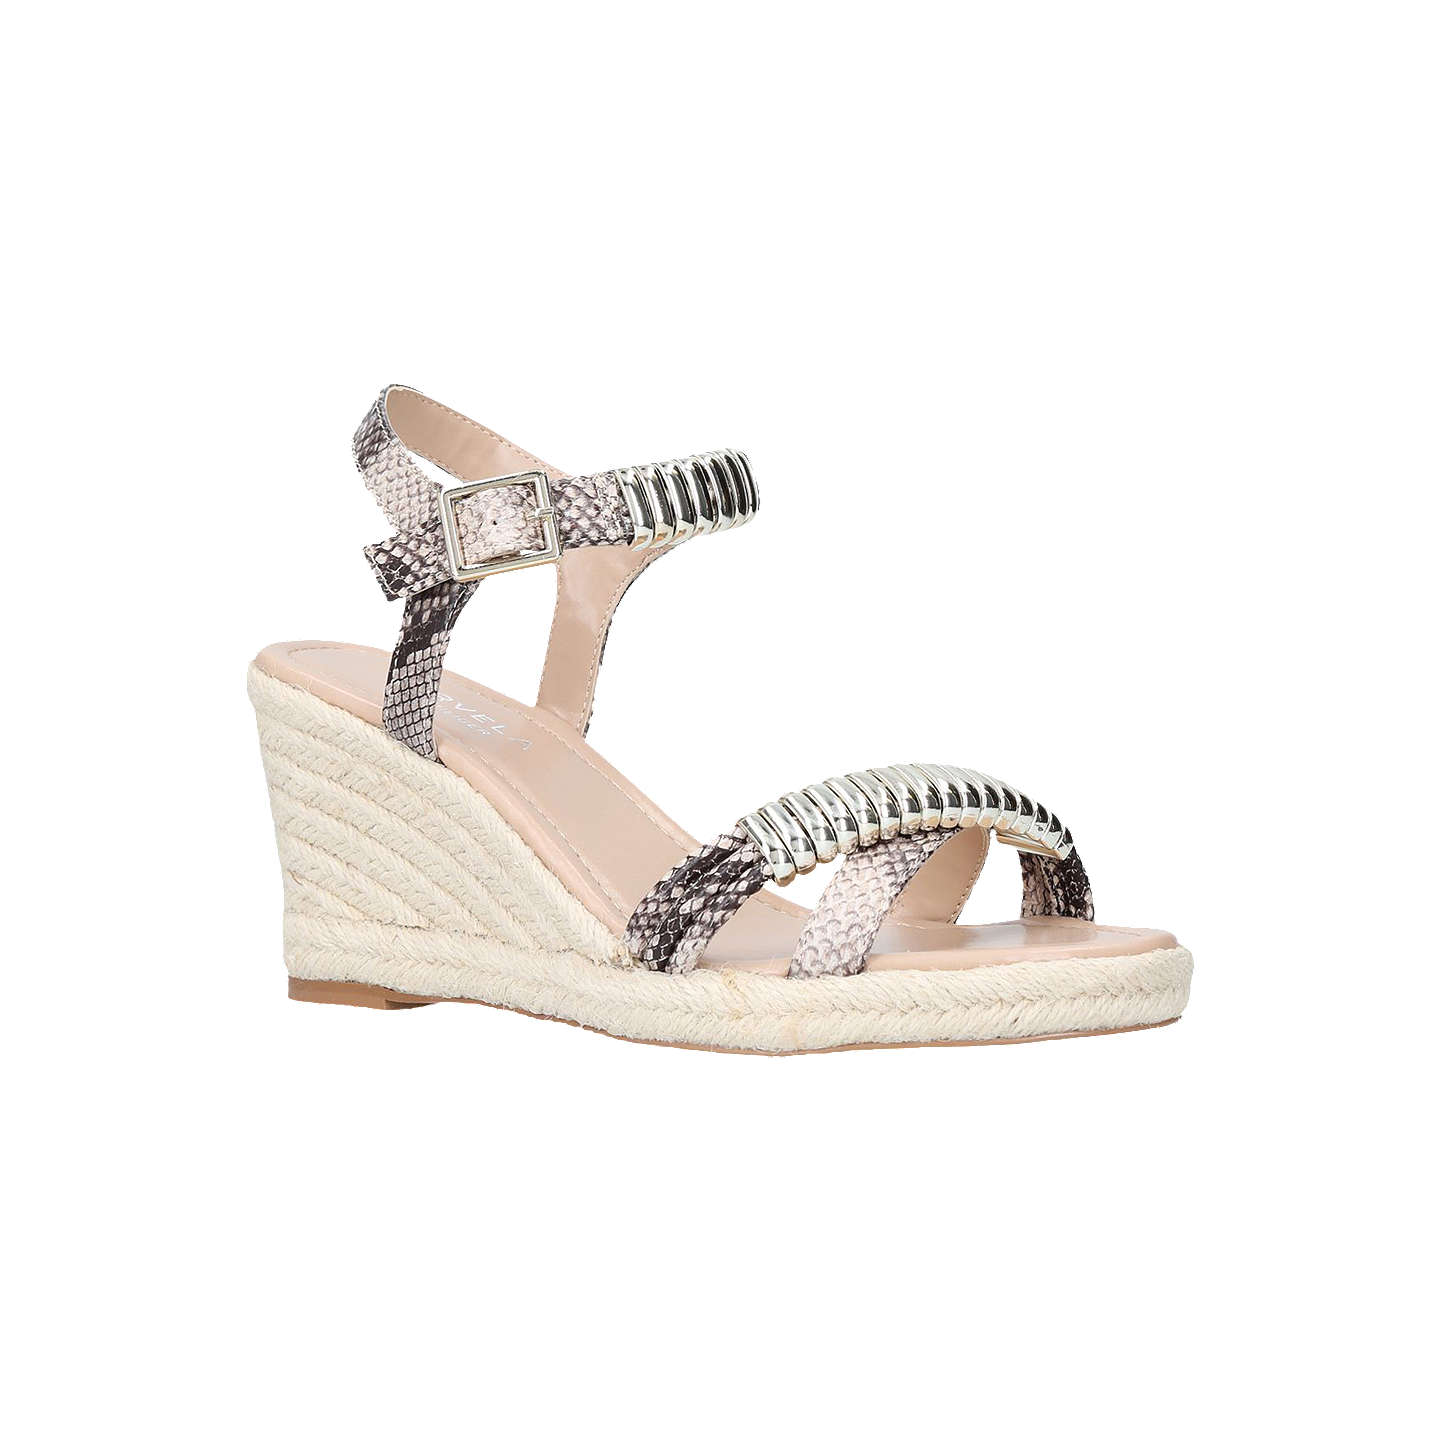 Carvela Slipper Wedge Heel Embellished Sandals, /Multi